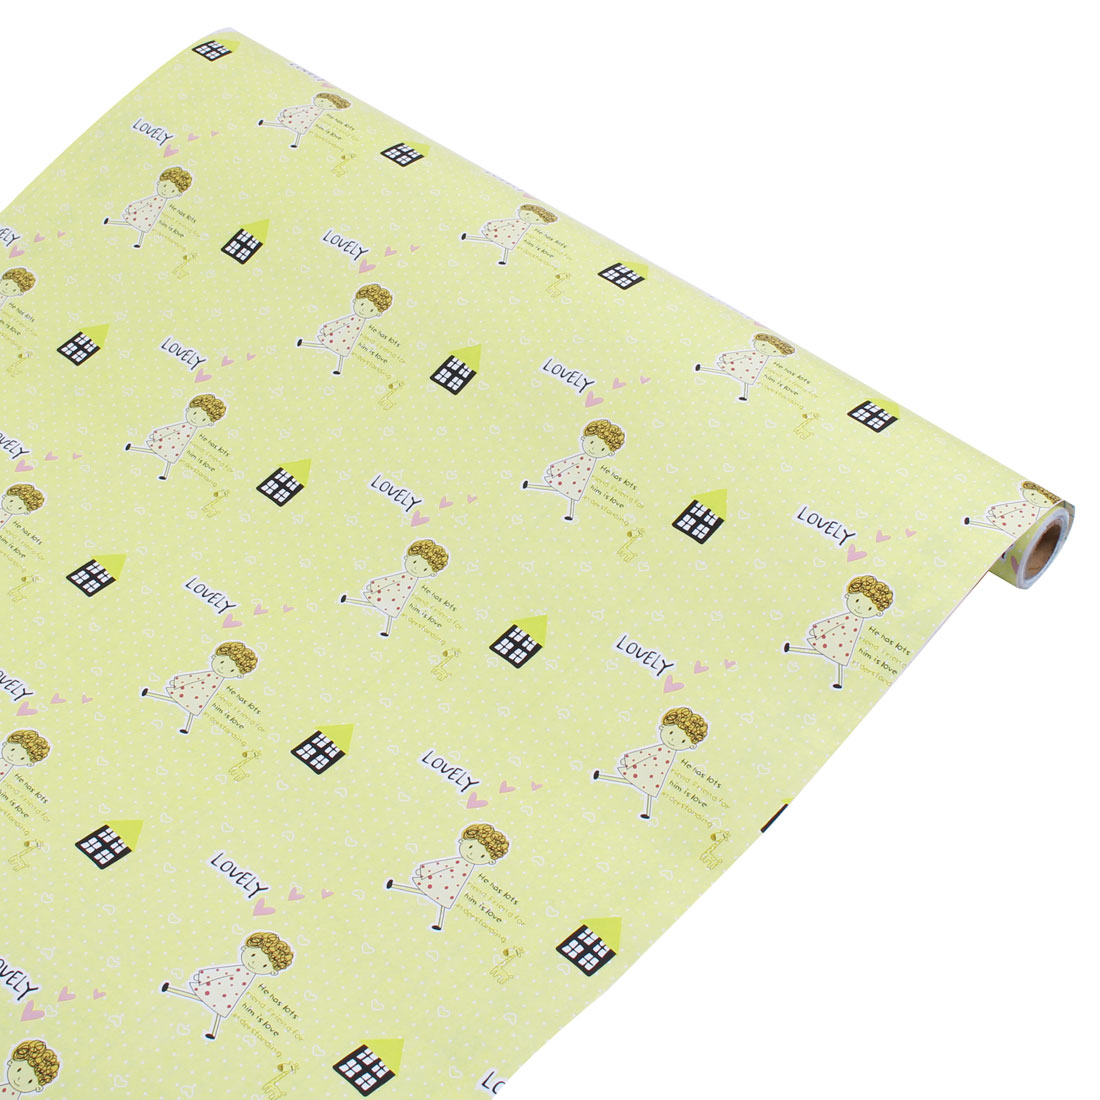 Cartoon Boy Pattern Bedroom Decor Wallpaper Roll Yellow 10Ft Length